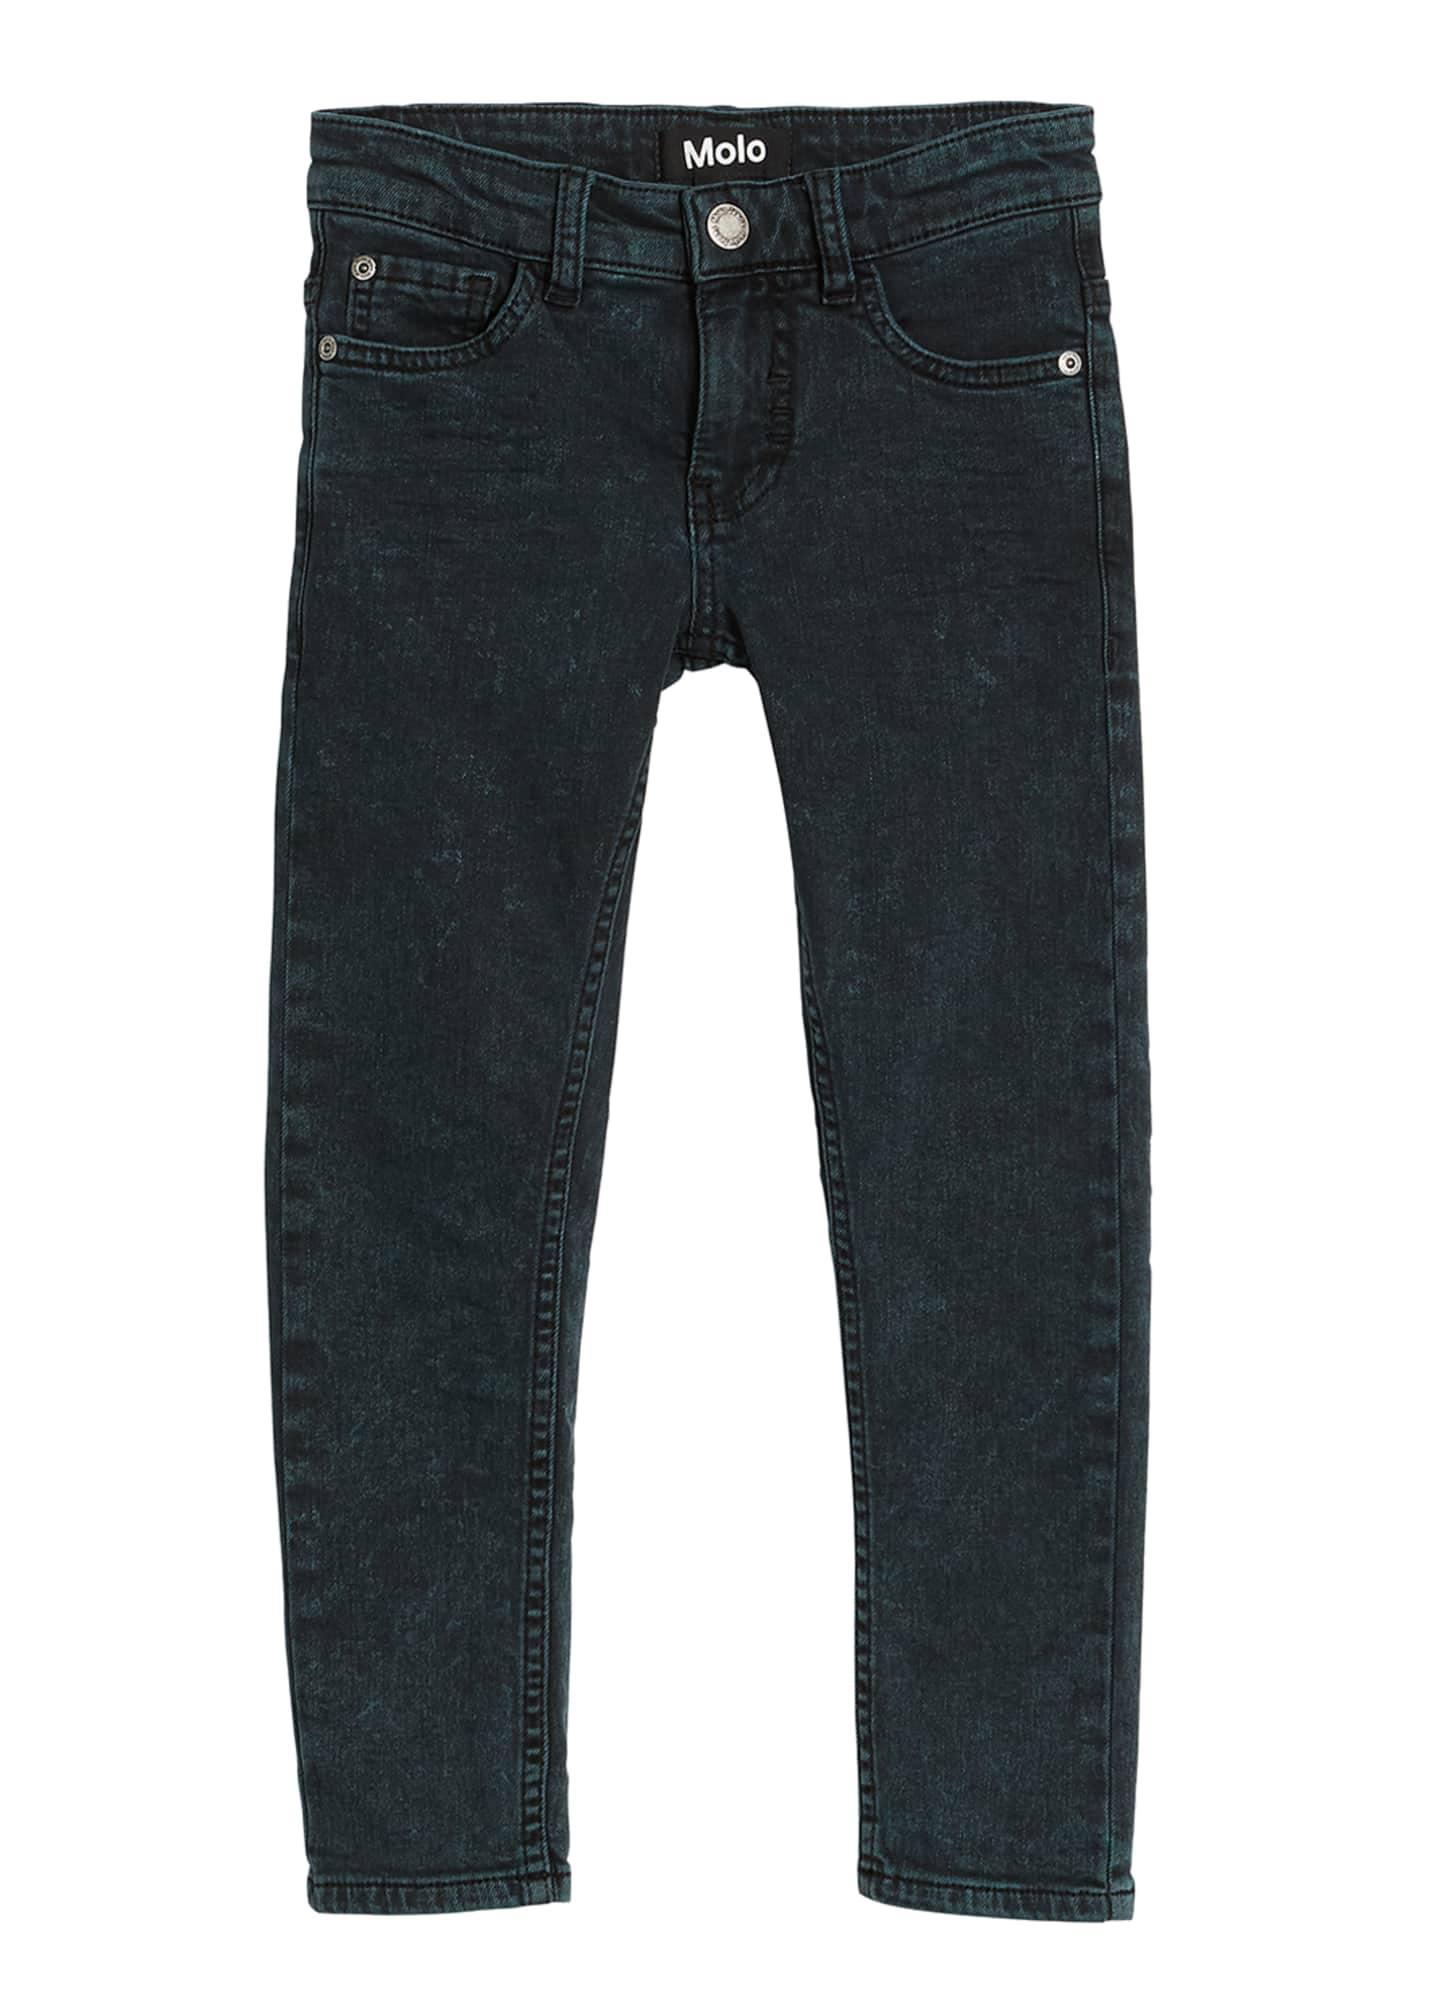 Molo Aksel Green Washed Denim Jeans, Size 4-12